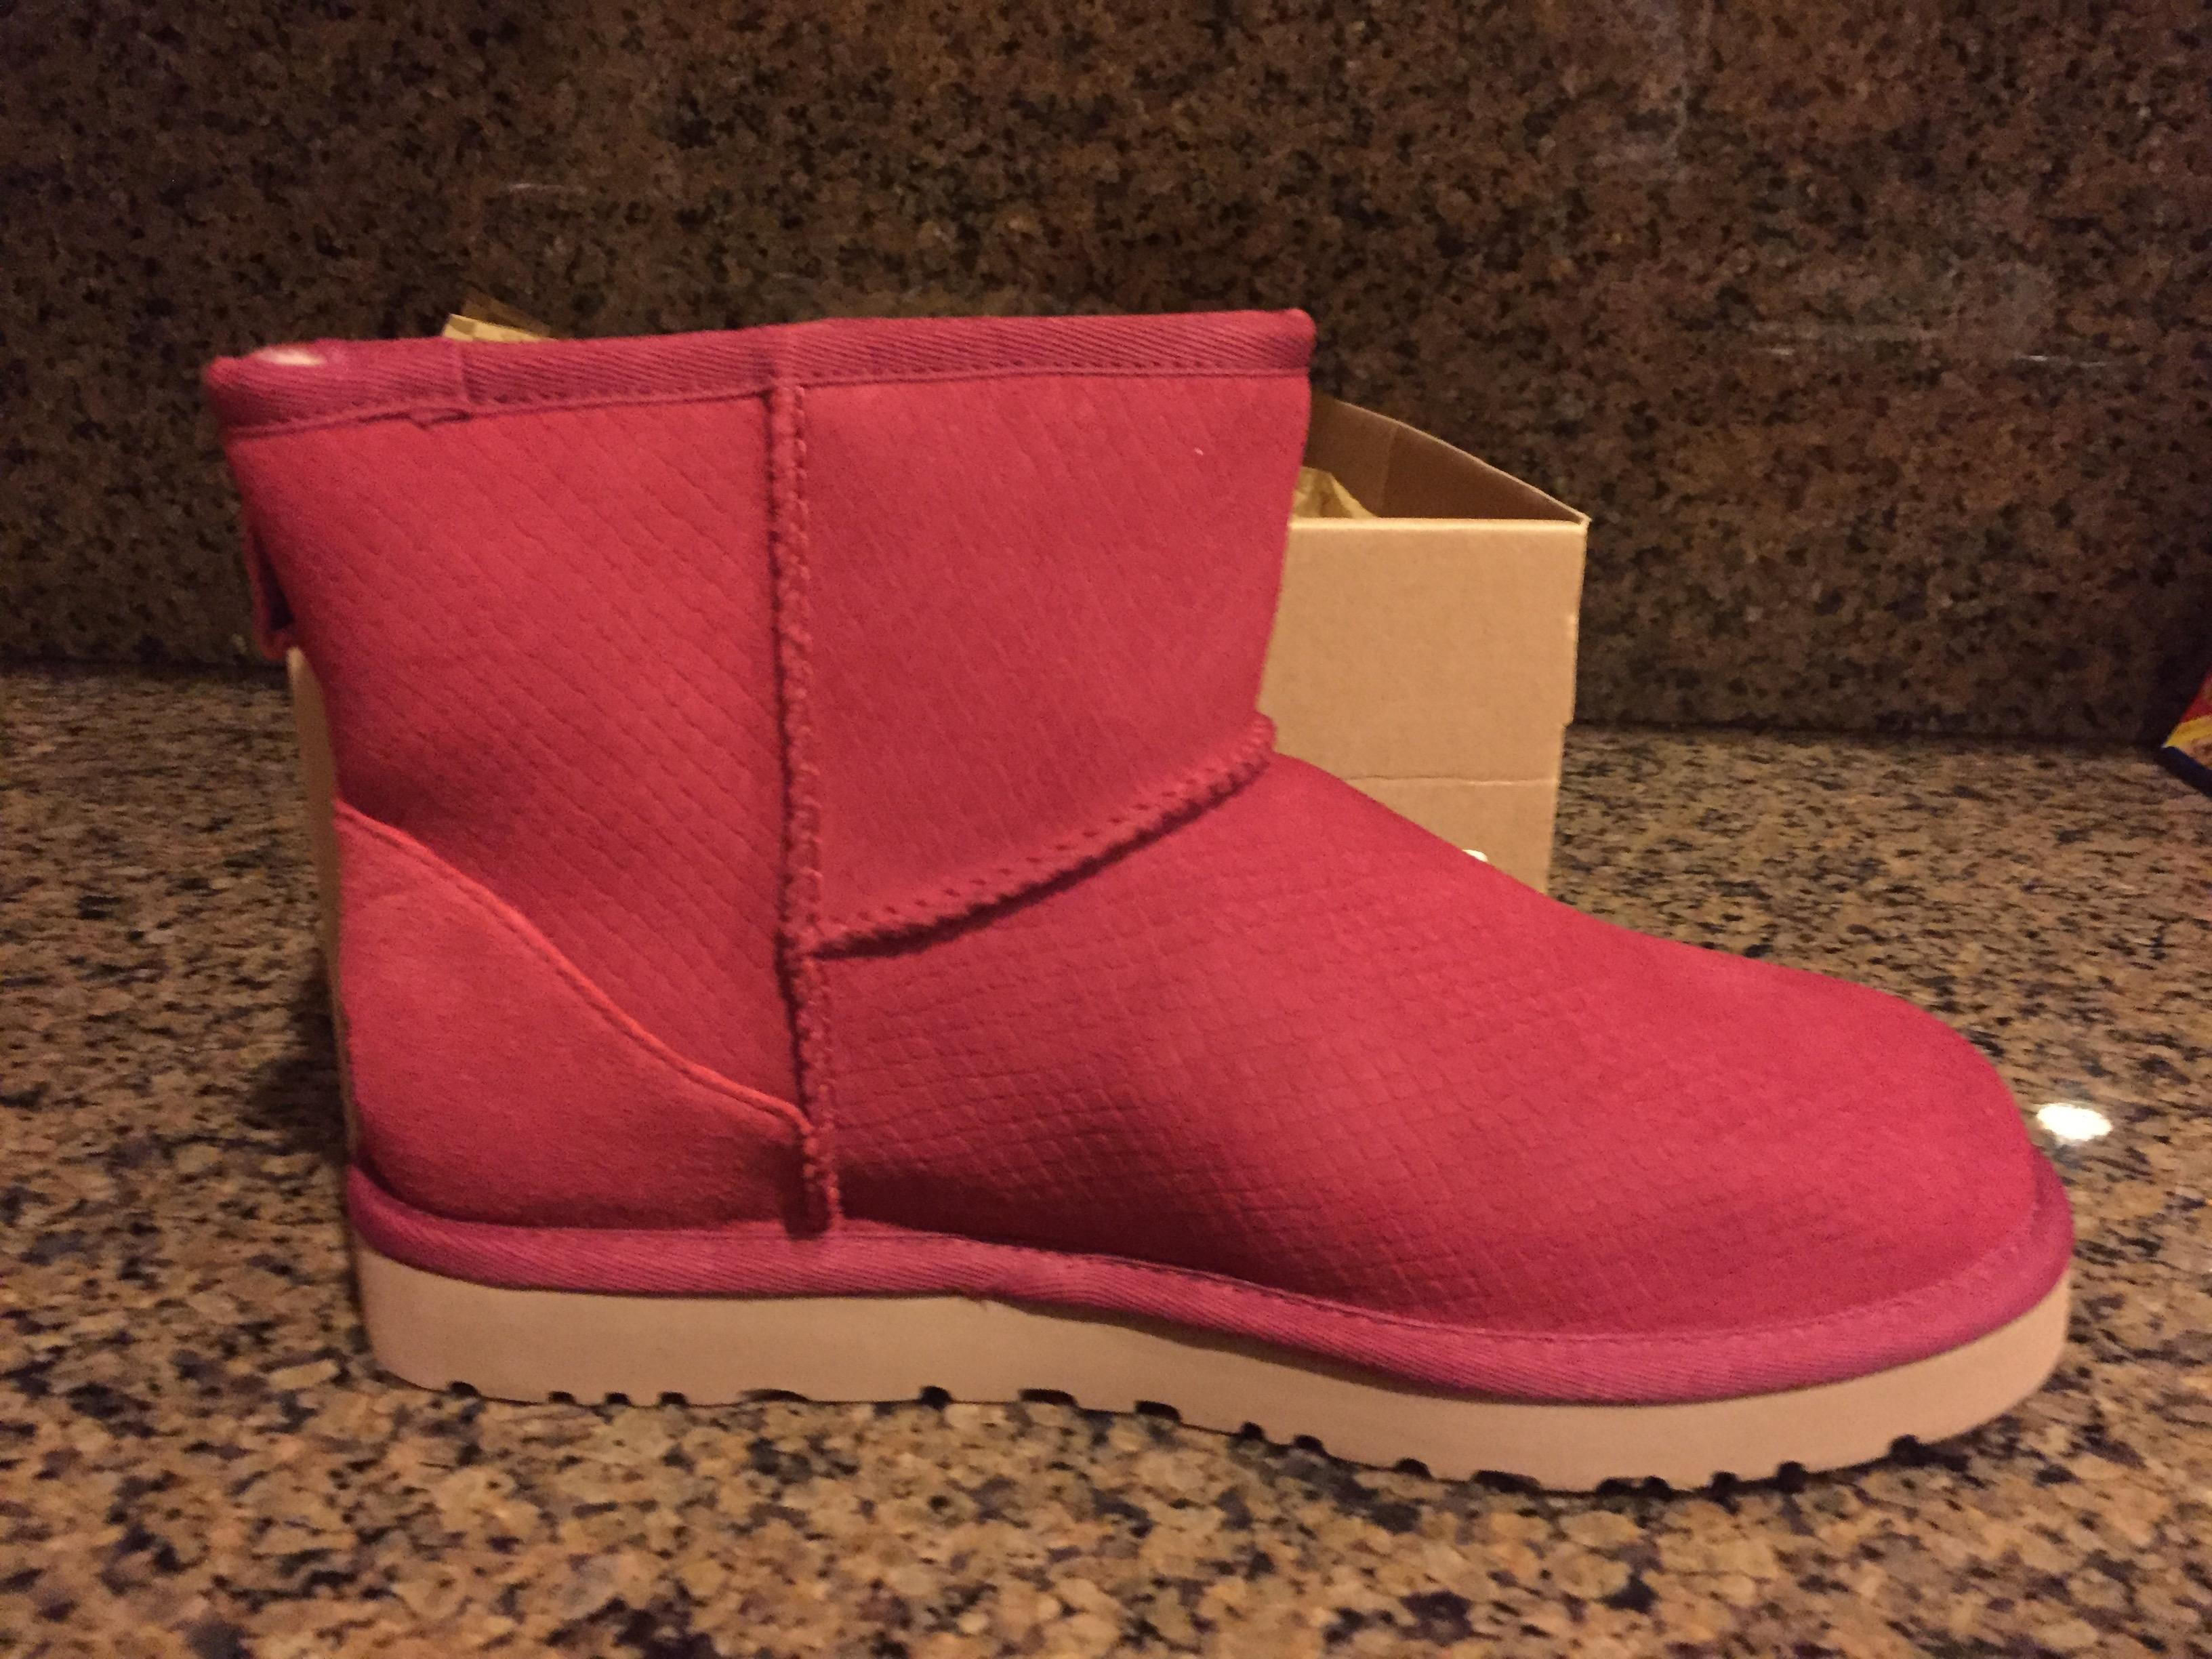 d1897094a72 sale ugg australia women s classic mini exotic scales boot number ...